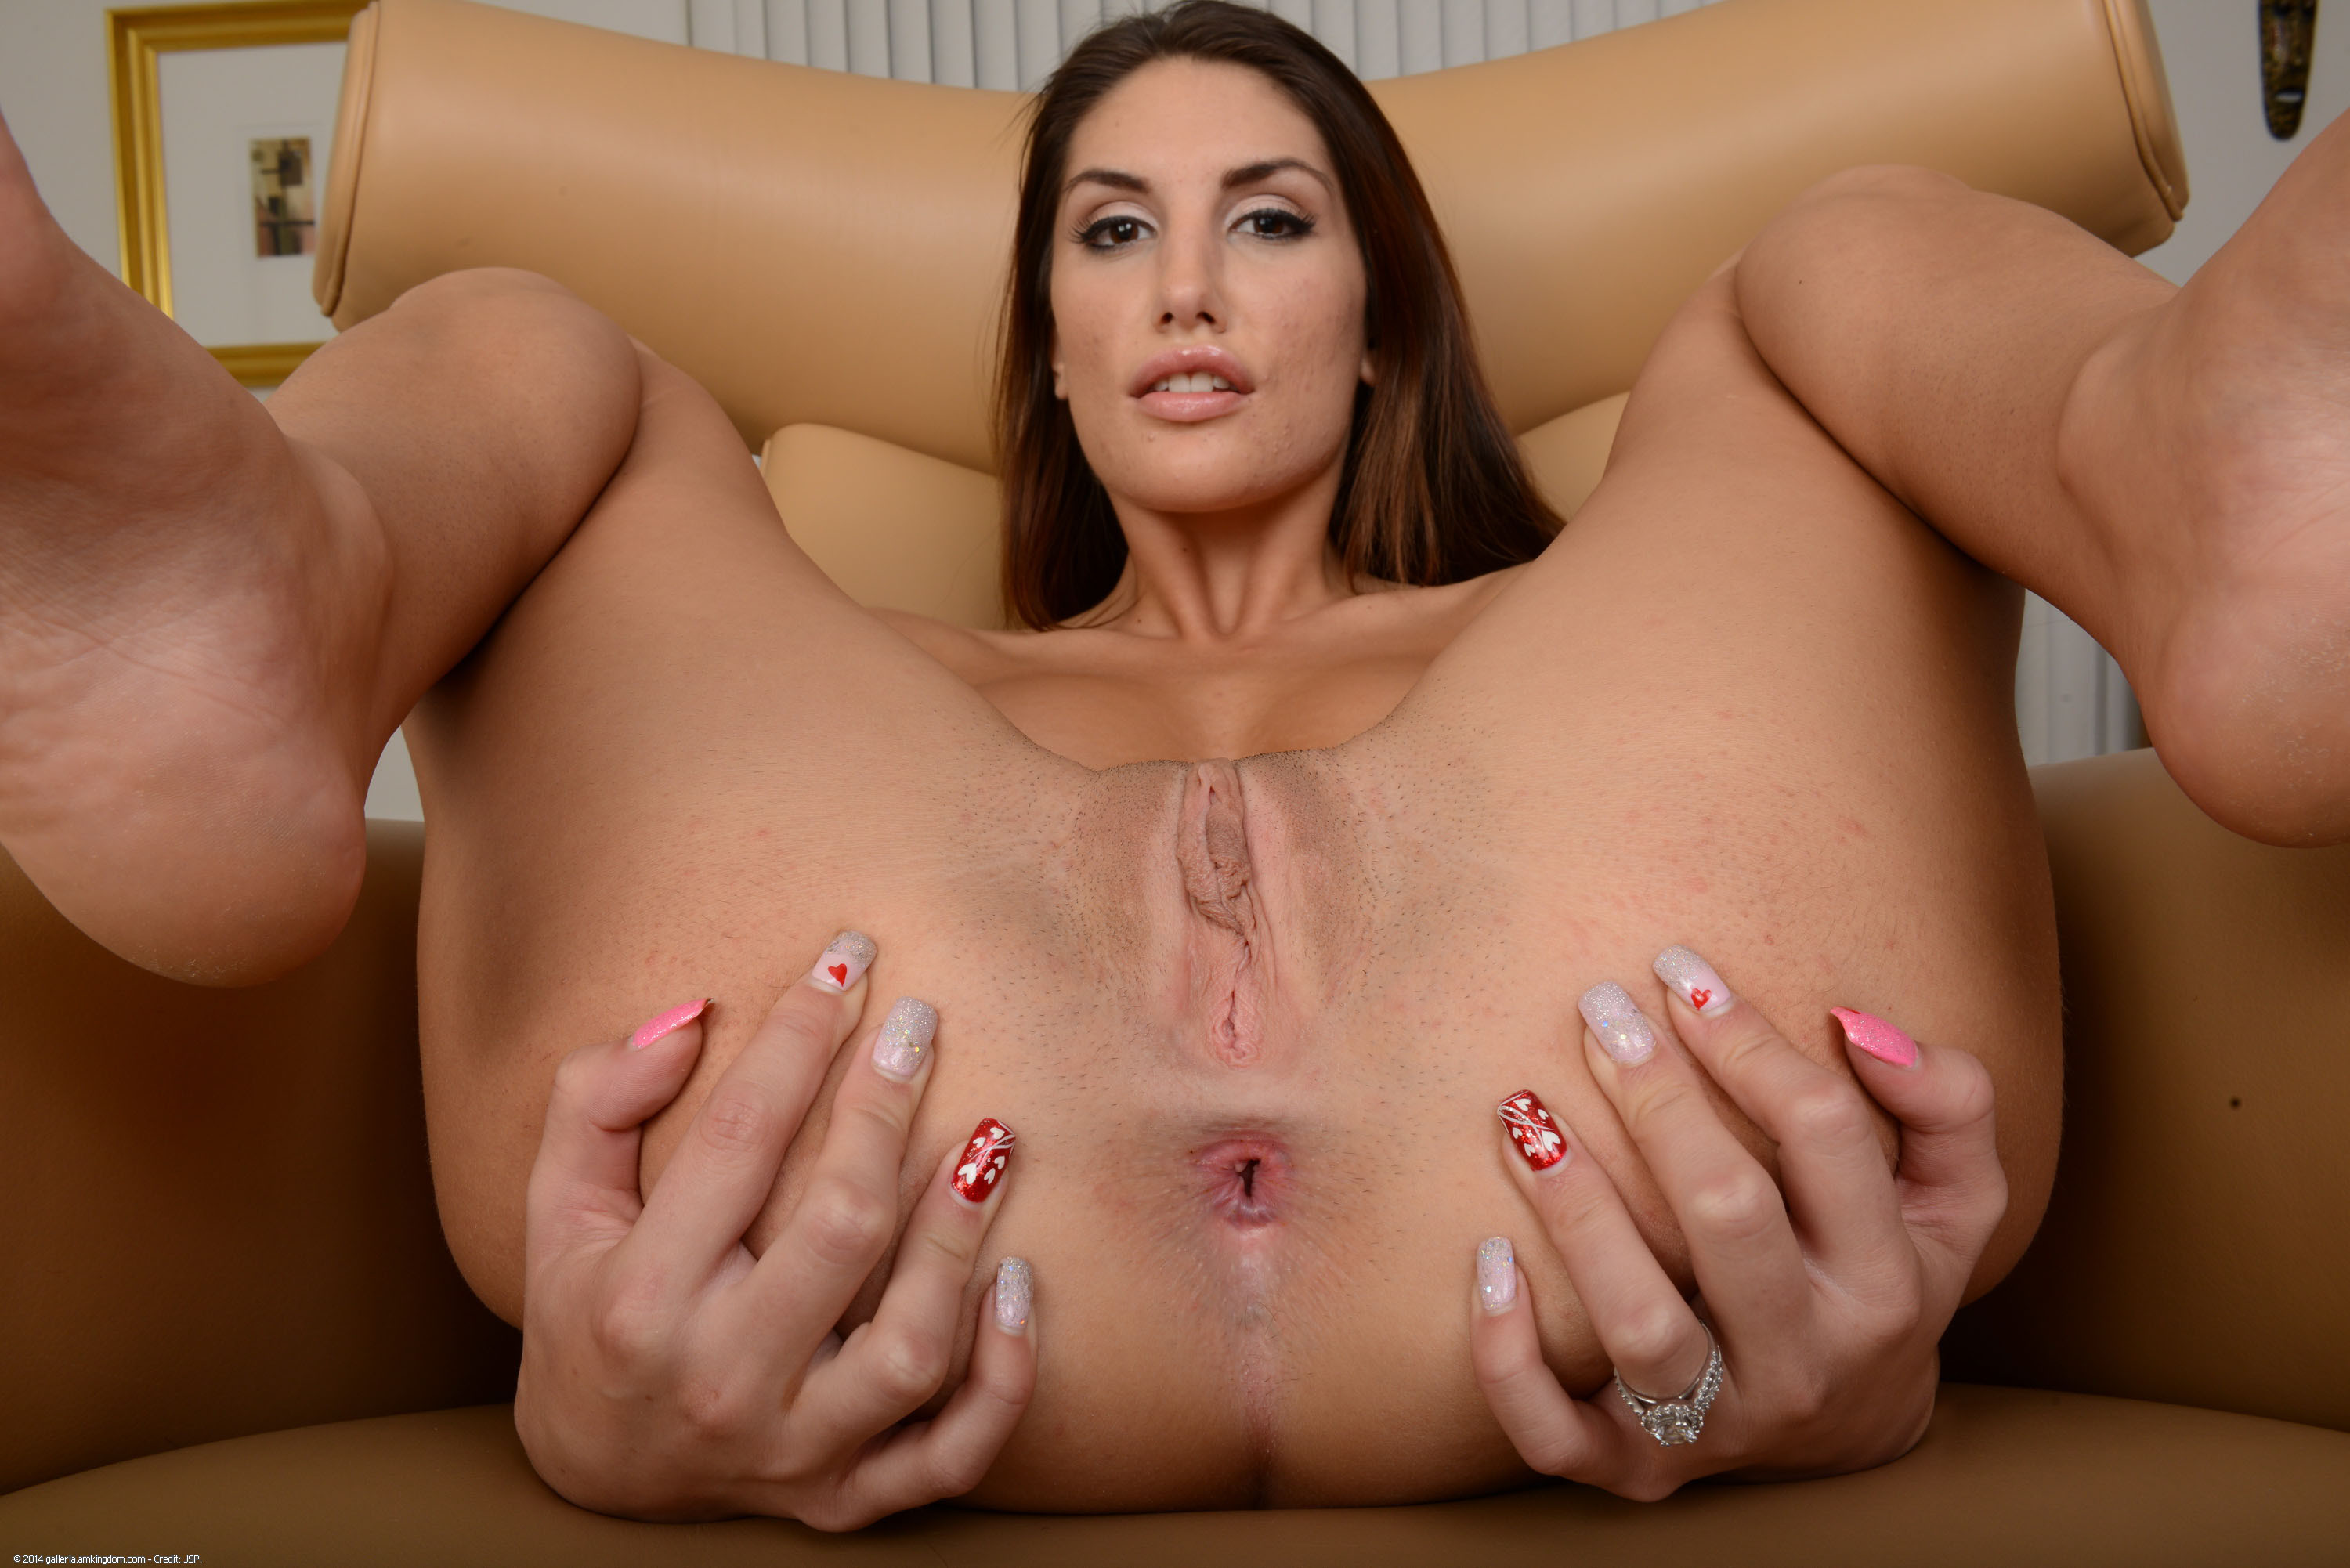 August ames spreading pussy